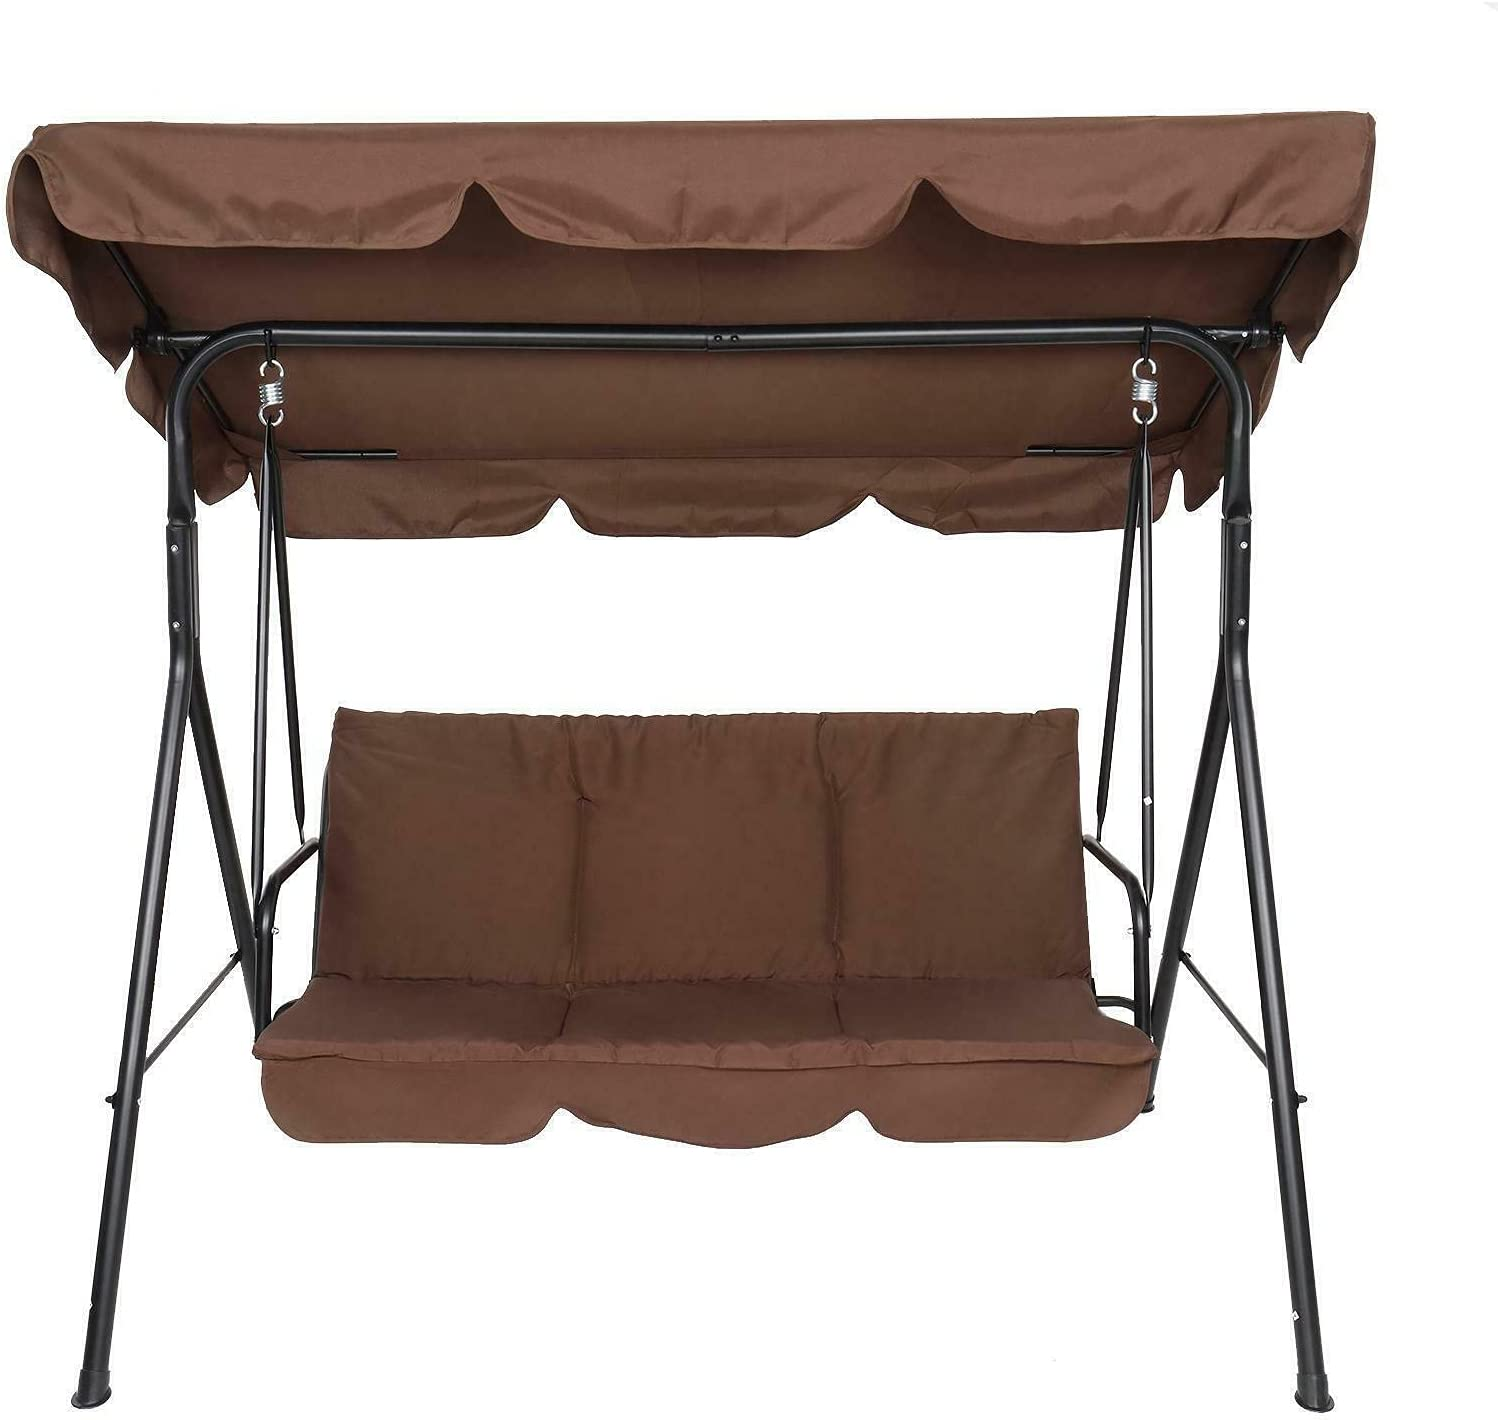 Swing Chair Sale Patio Hanging Outdoor Furniture specialty shop Bench